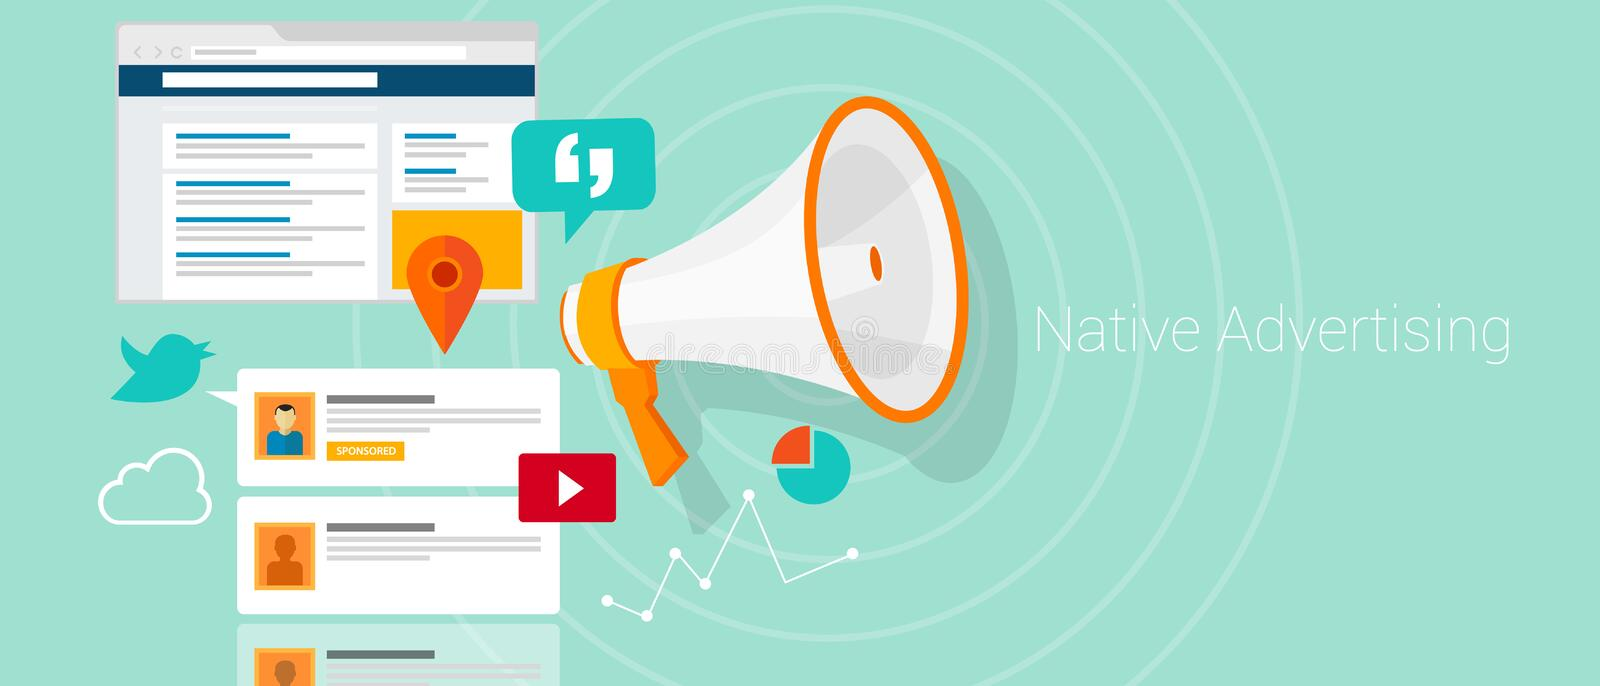 Native advertising contextual. Native advertising as kind of marketing integrated into content such as advertorial or social media timeline and blog post stock illustration